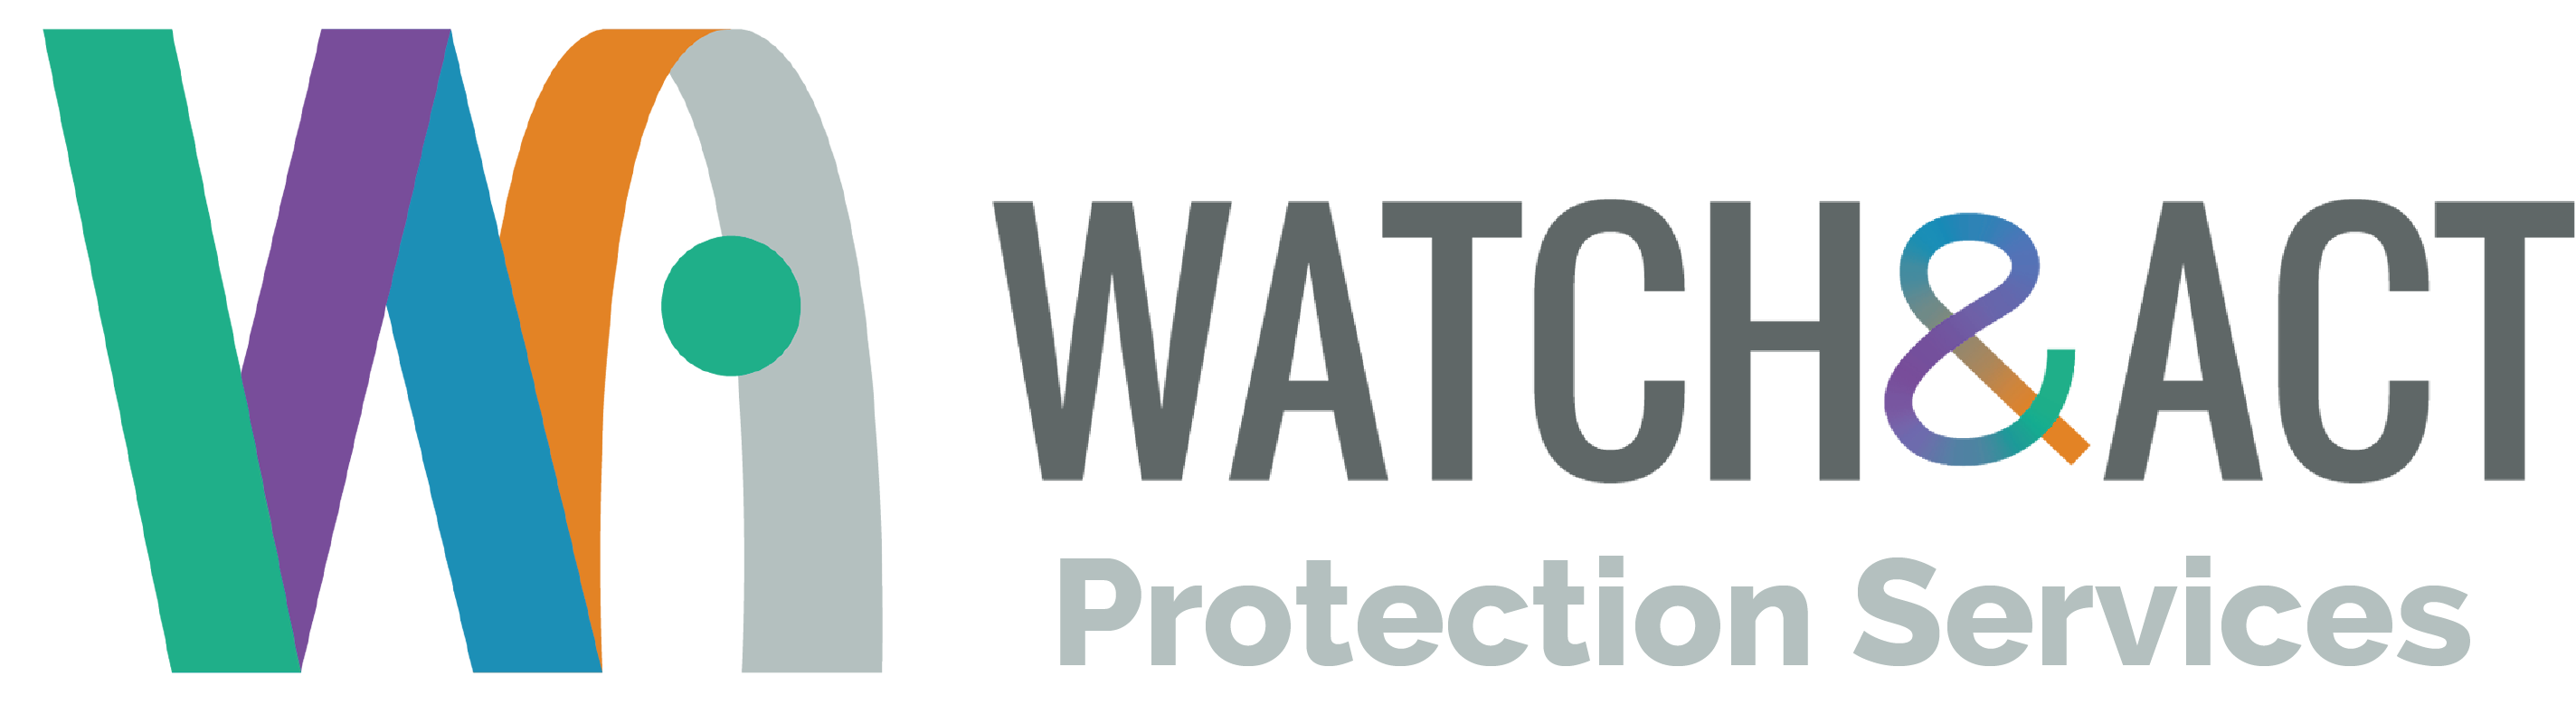 Watch and Act Protection Services